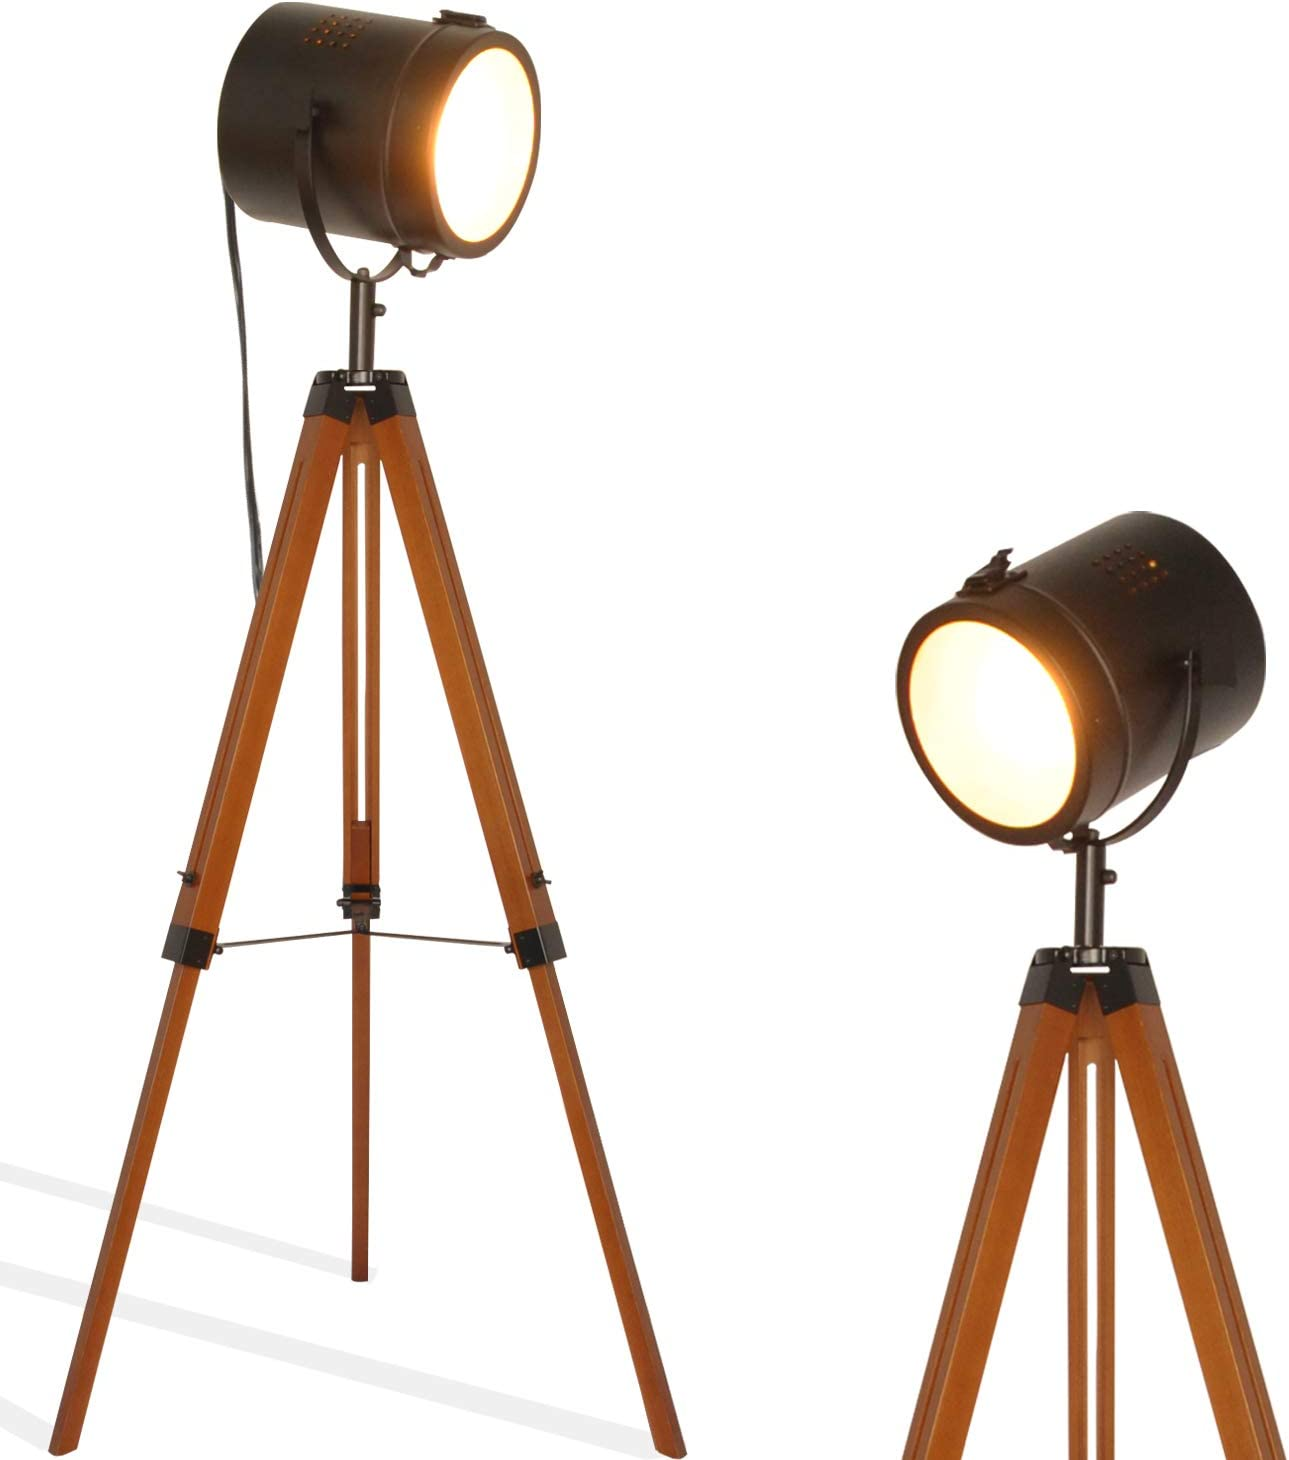 retro home Industrial Vintage Tripod Floor Table Lamp - Modern Adjustable Height Wooden Nautical Cinema Searchlight - Spotlight Standing Reading Light for Living Room Office Decoration(excluding Bulb)